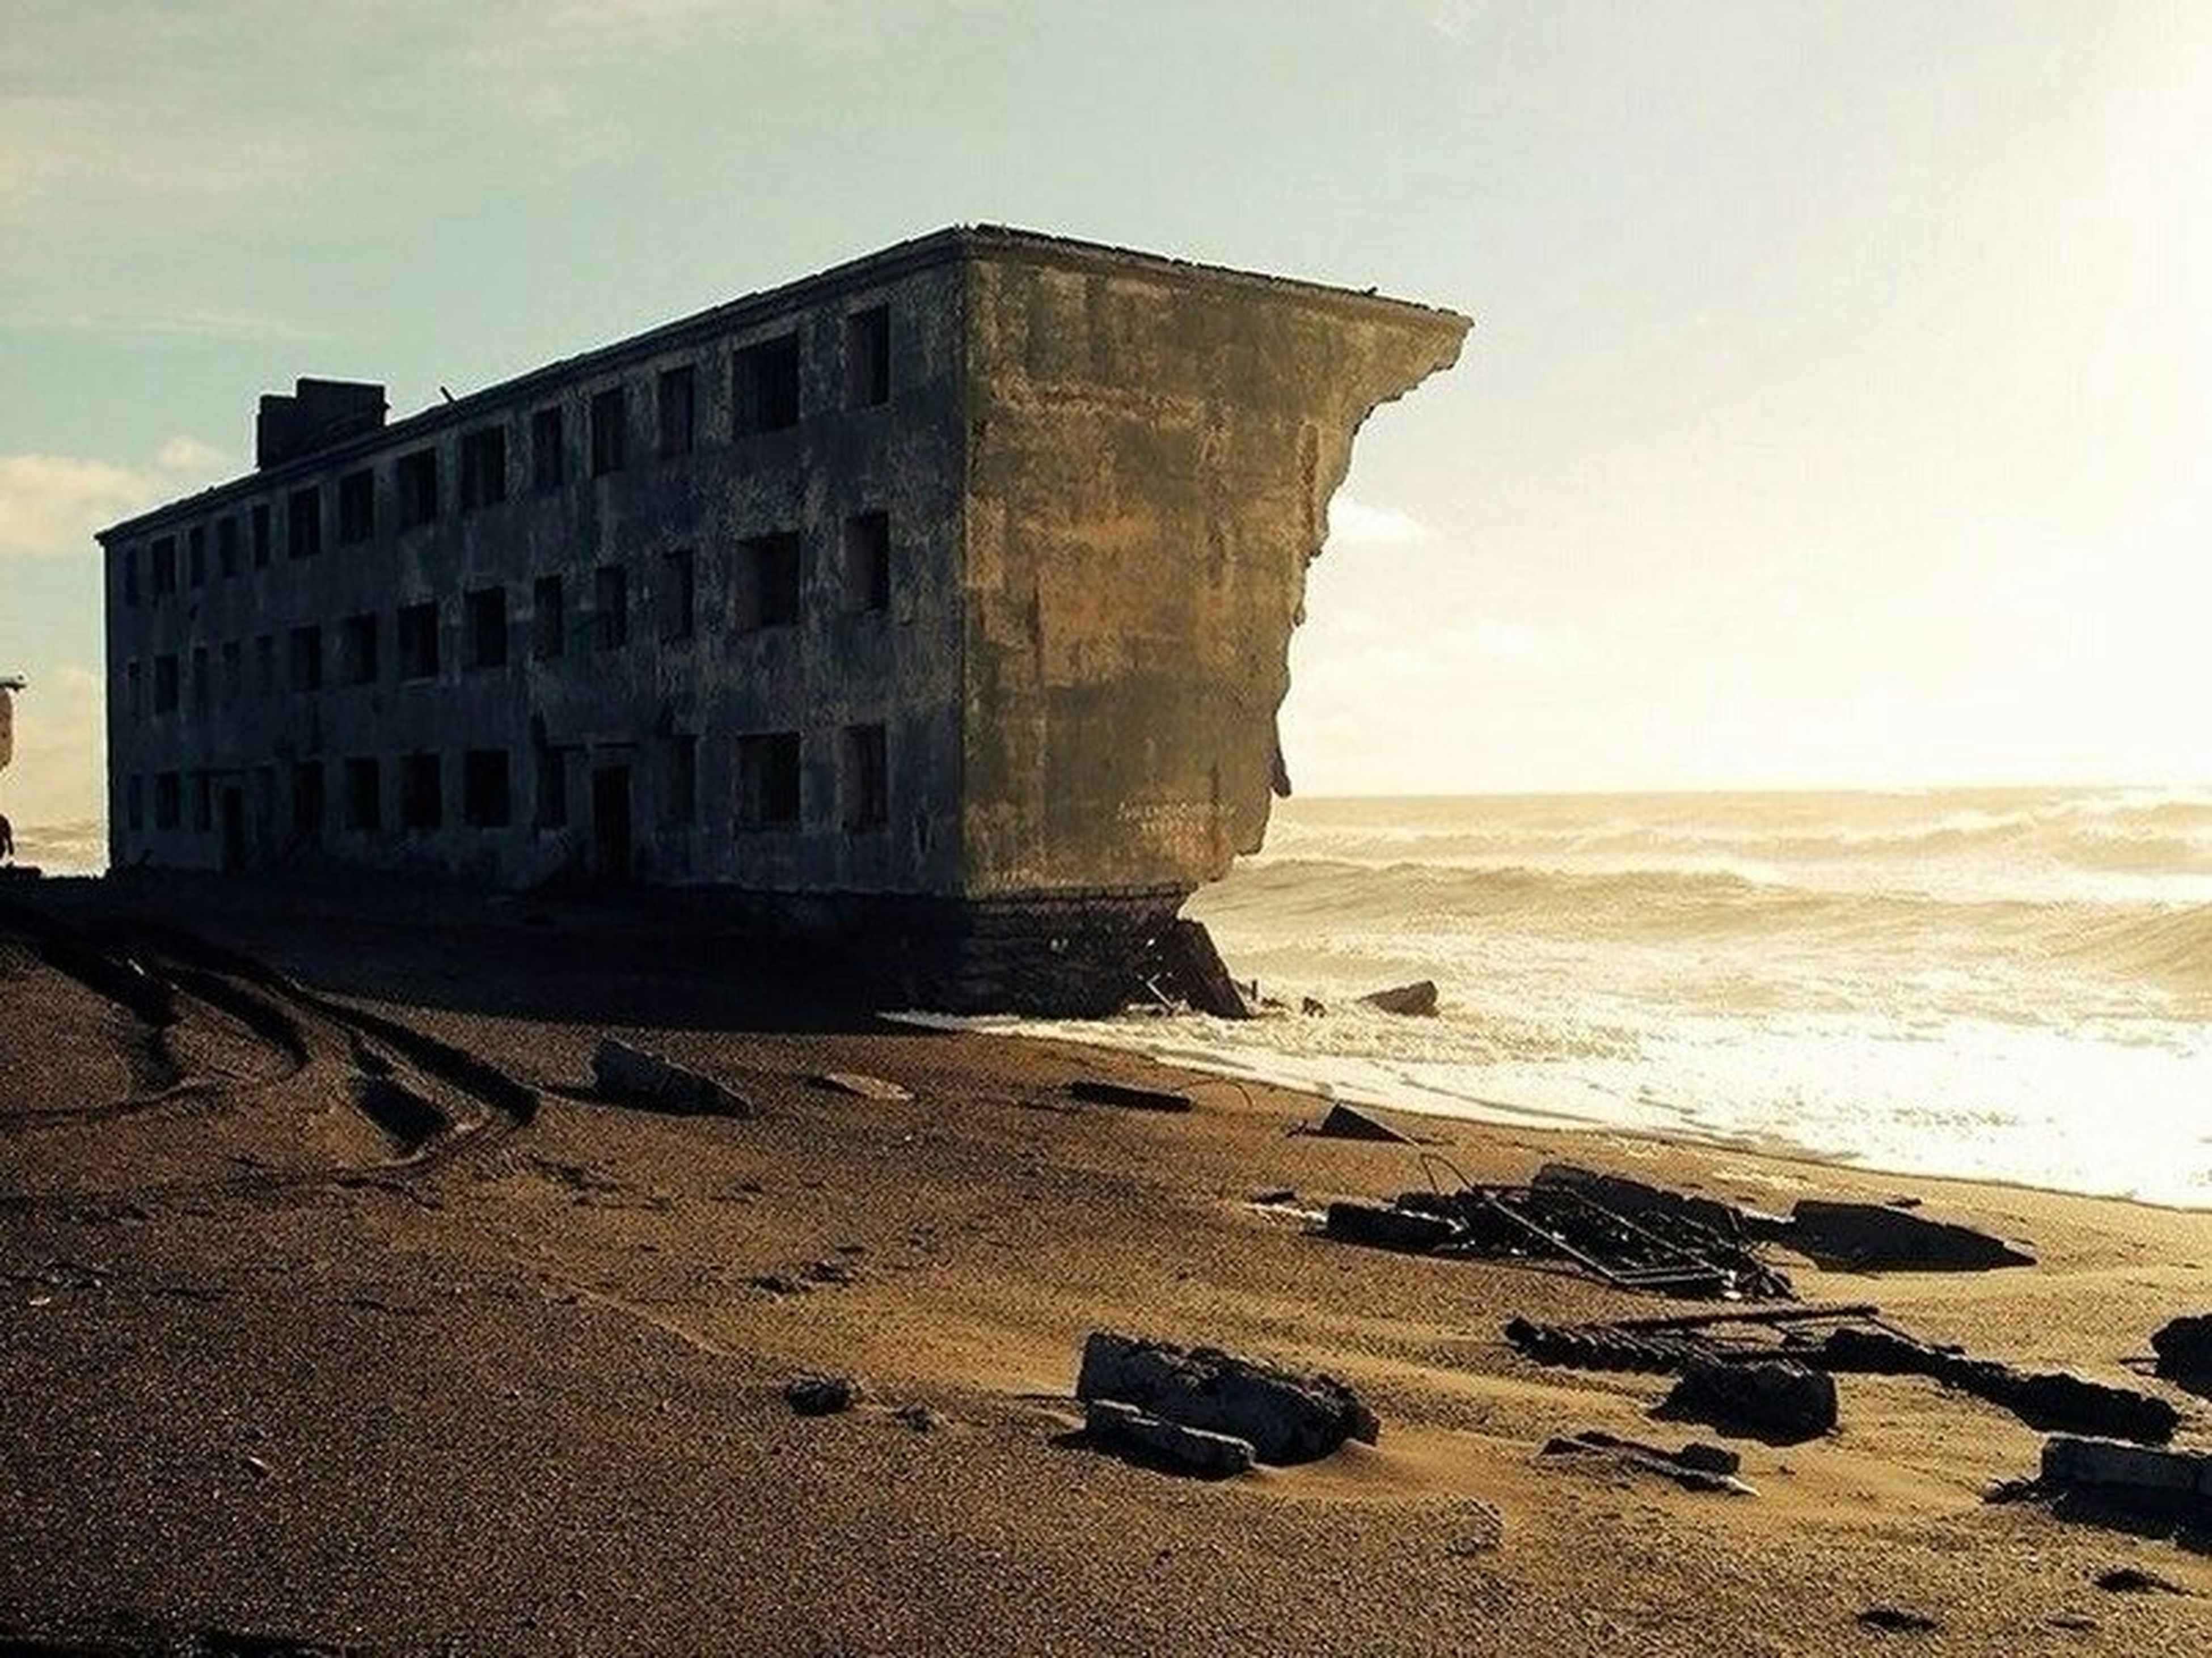 built structure, architecture, beach, sky, building exterior, sea, sand, water, shore, history, horizon over water, old, abandoned, travel destinations, old ruin, day, the past, outdoors, no people, sunlight